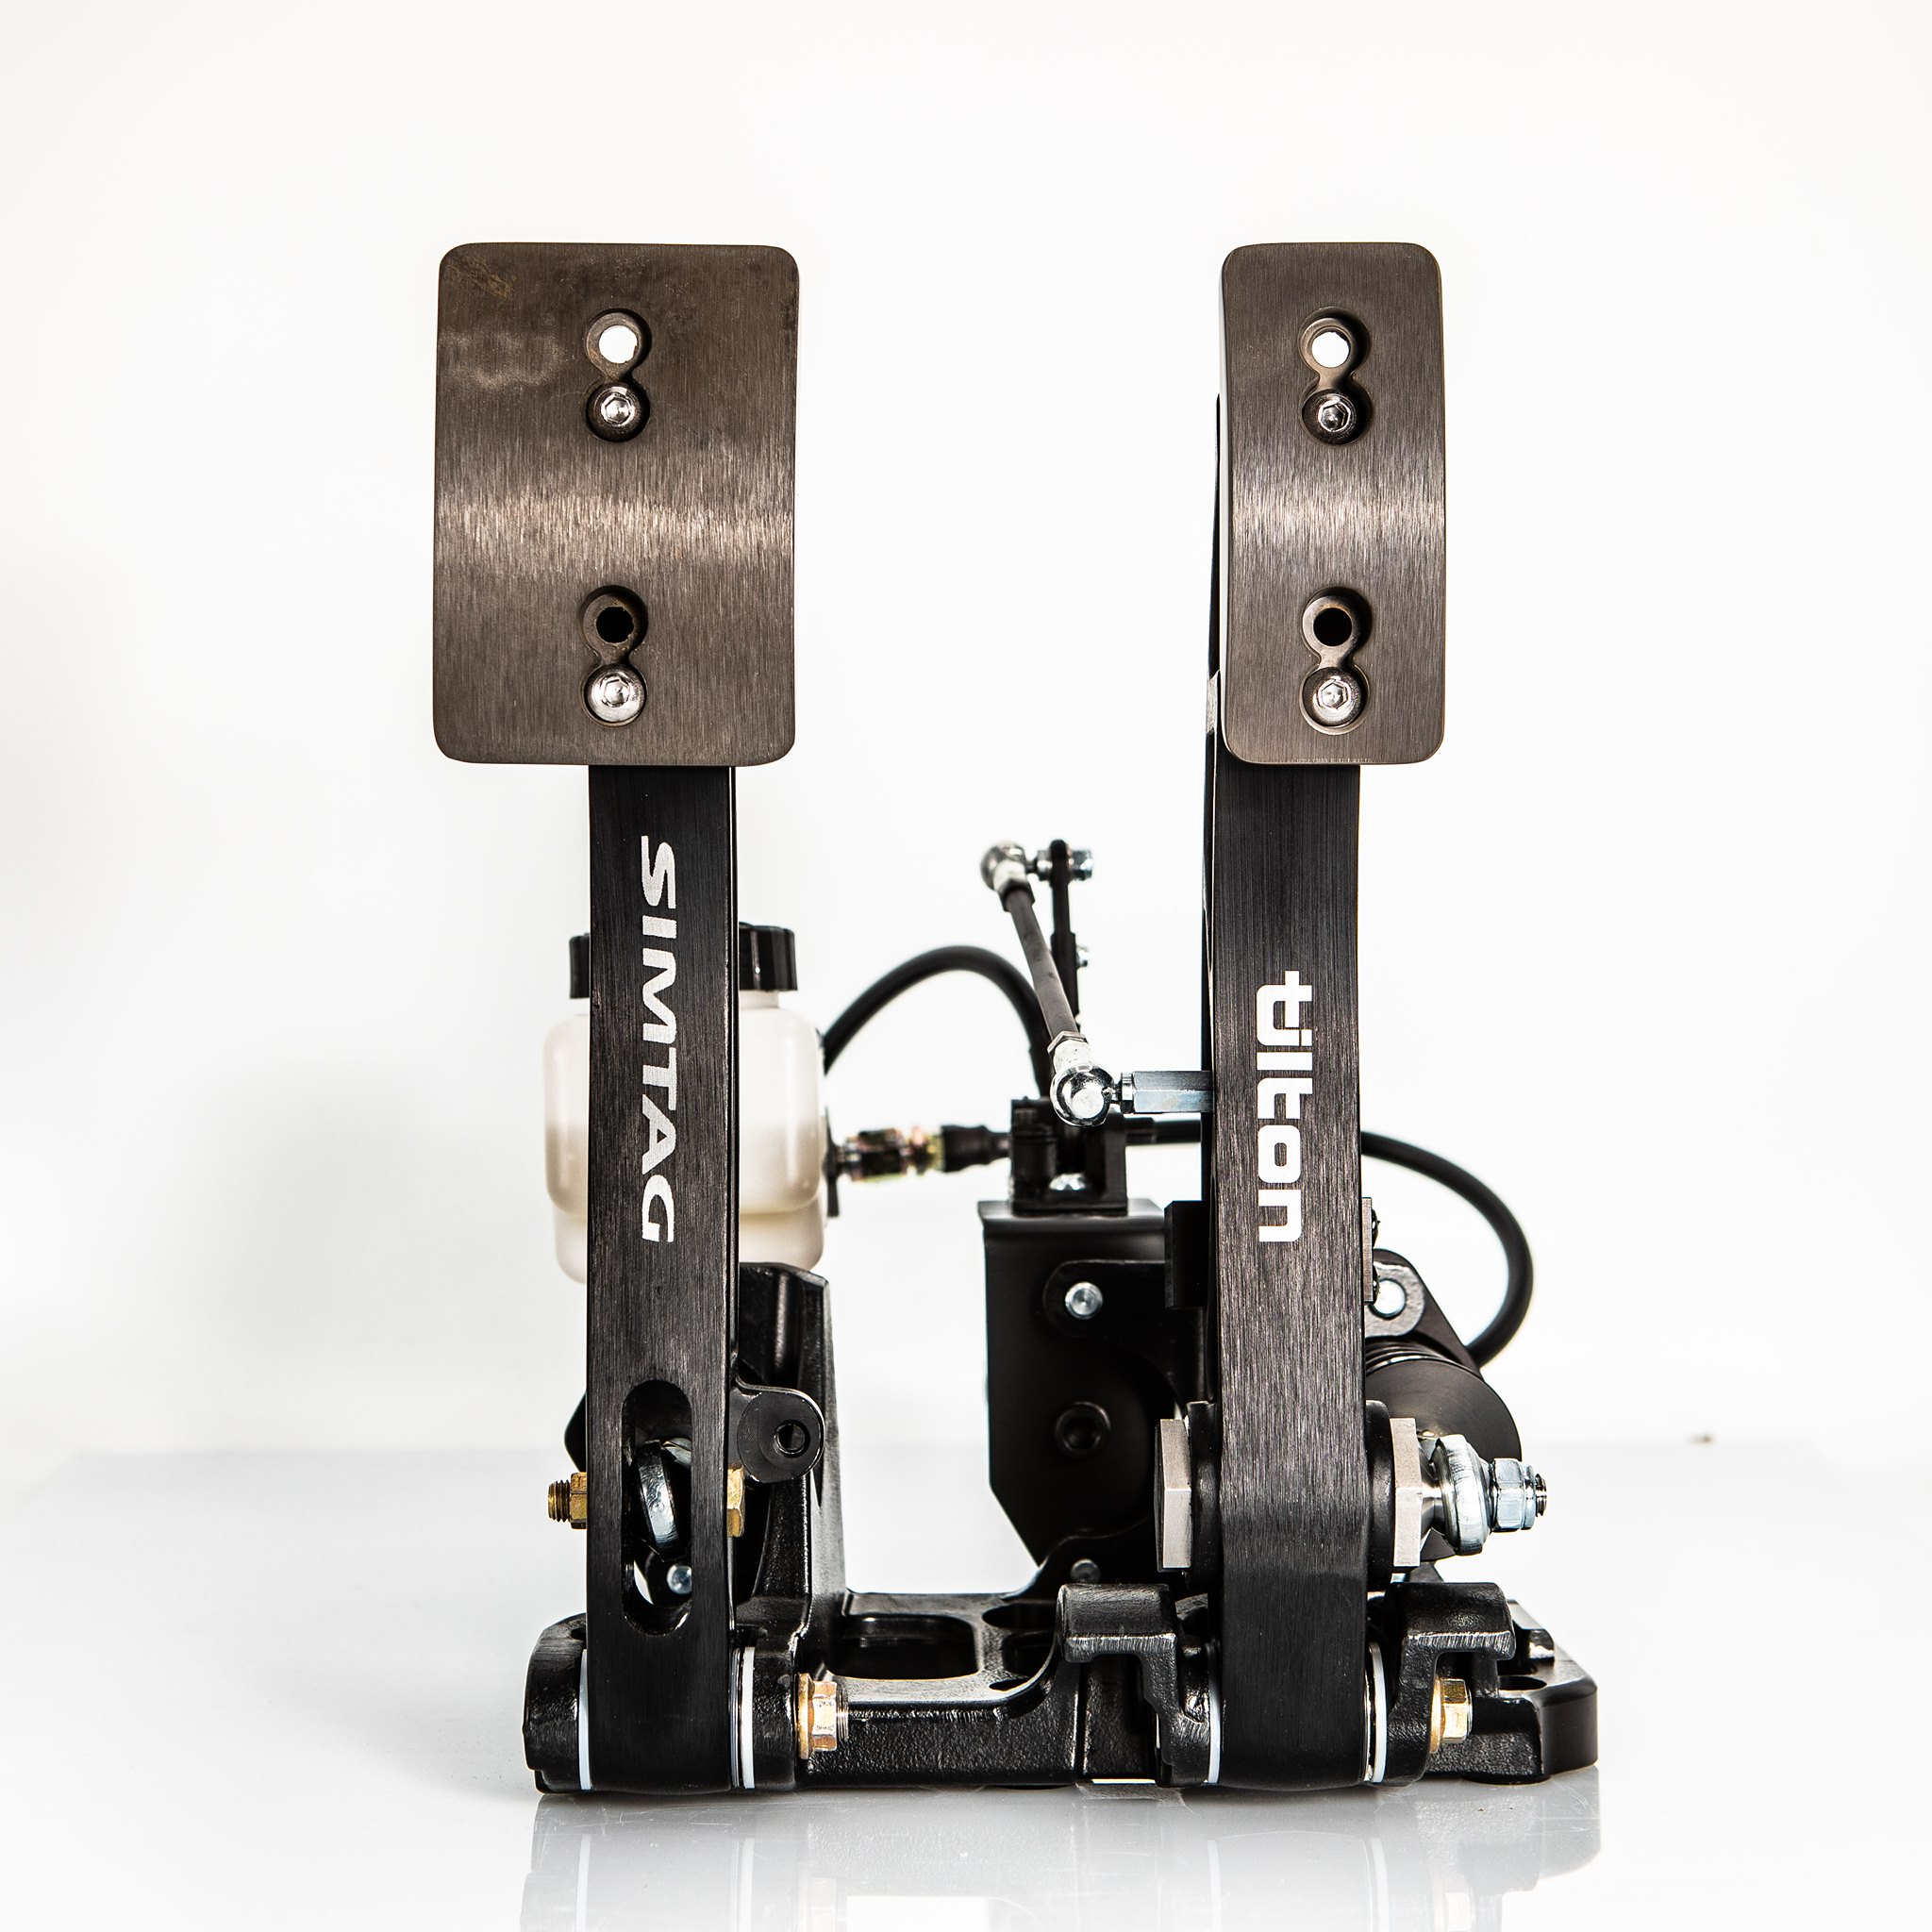 Simtag Hydraulic 2-pedal set Racer Edition 1